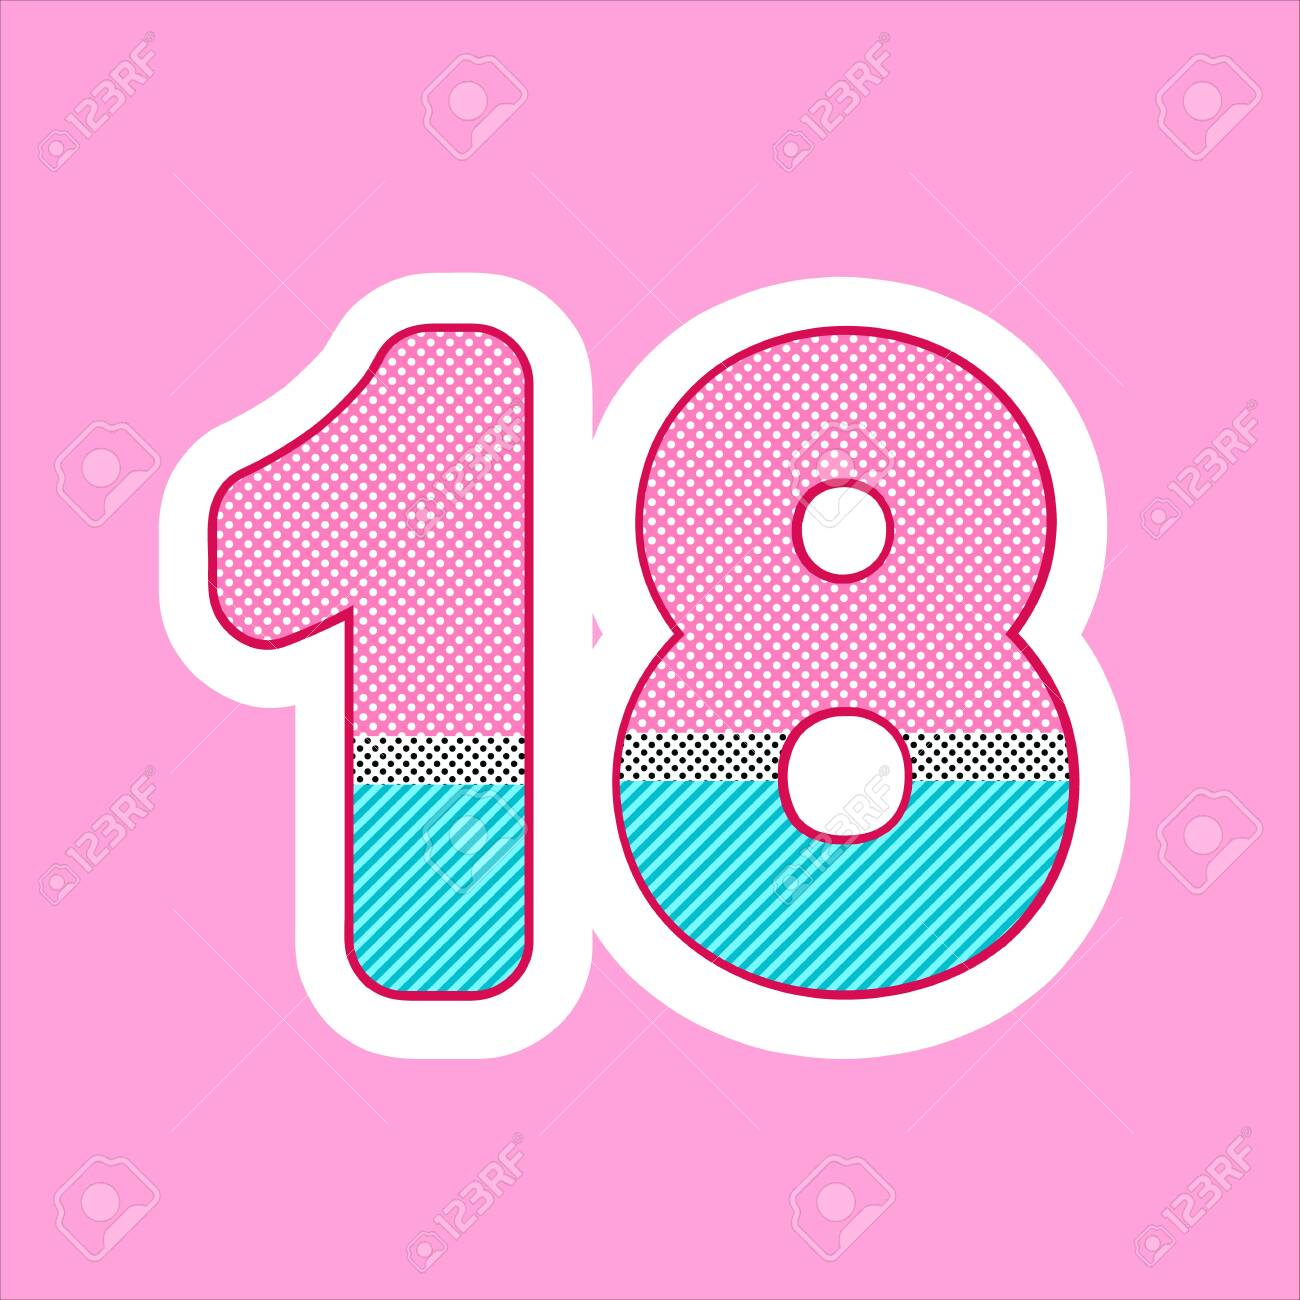 cute figure, number for children's birthday, holiday in the style